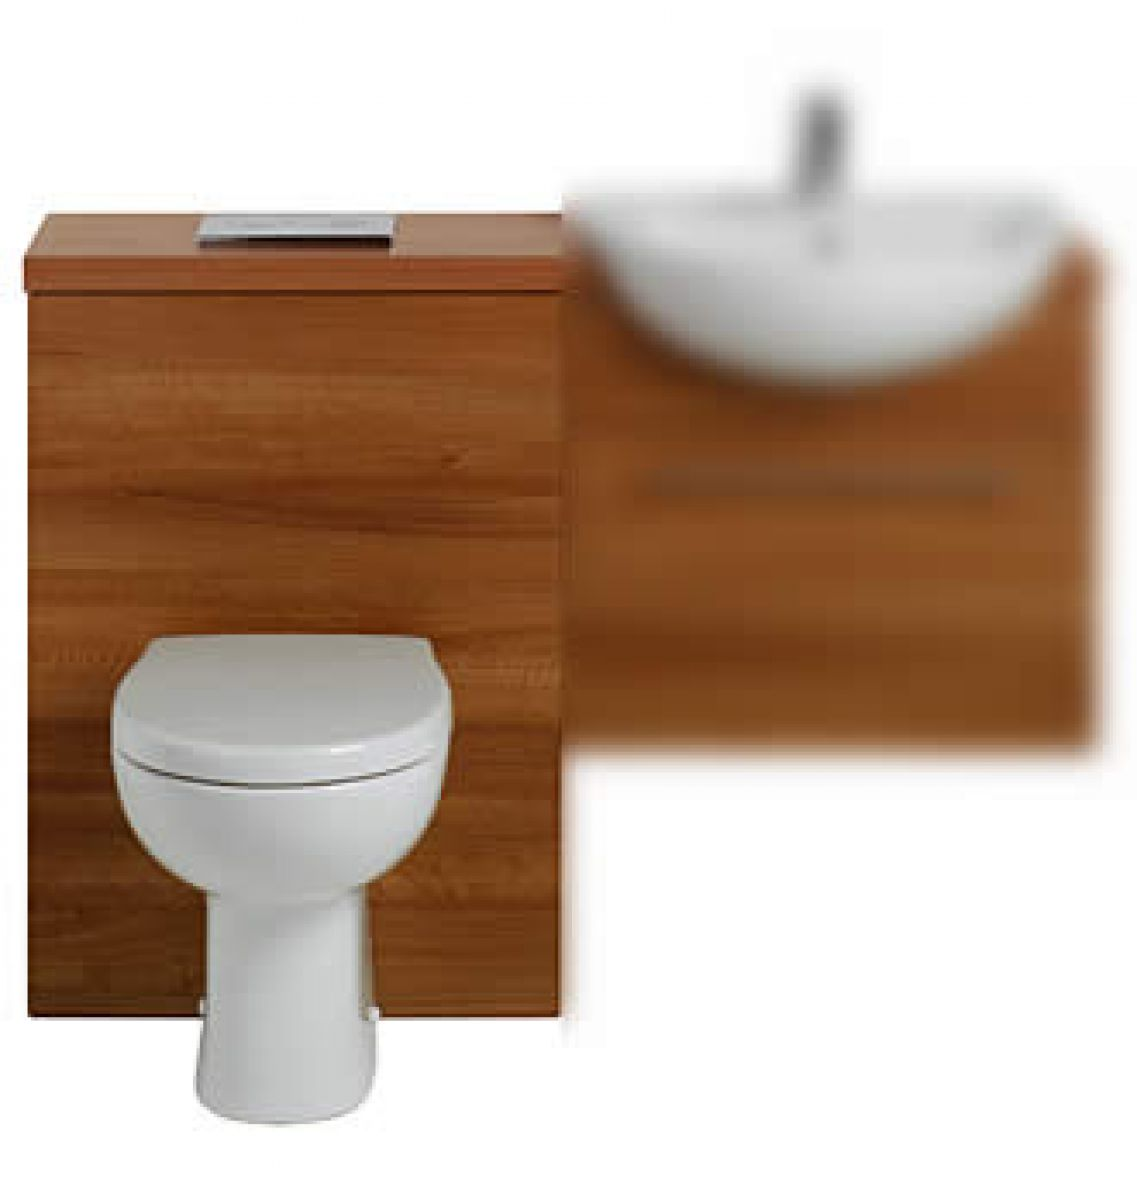 ideal standard create wc unit uk bathrooms. Black Bedroom Furniture Sets. Home Design Ideas